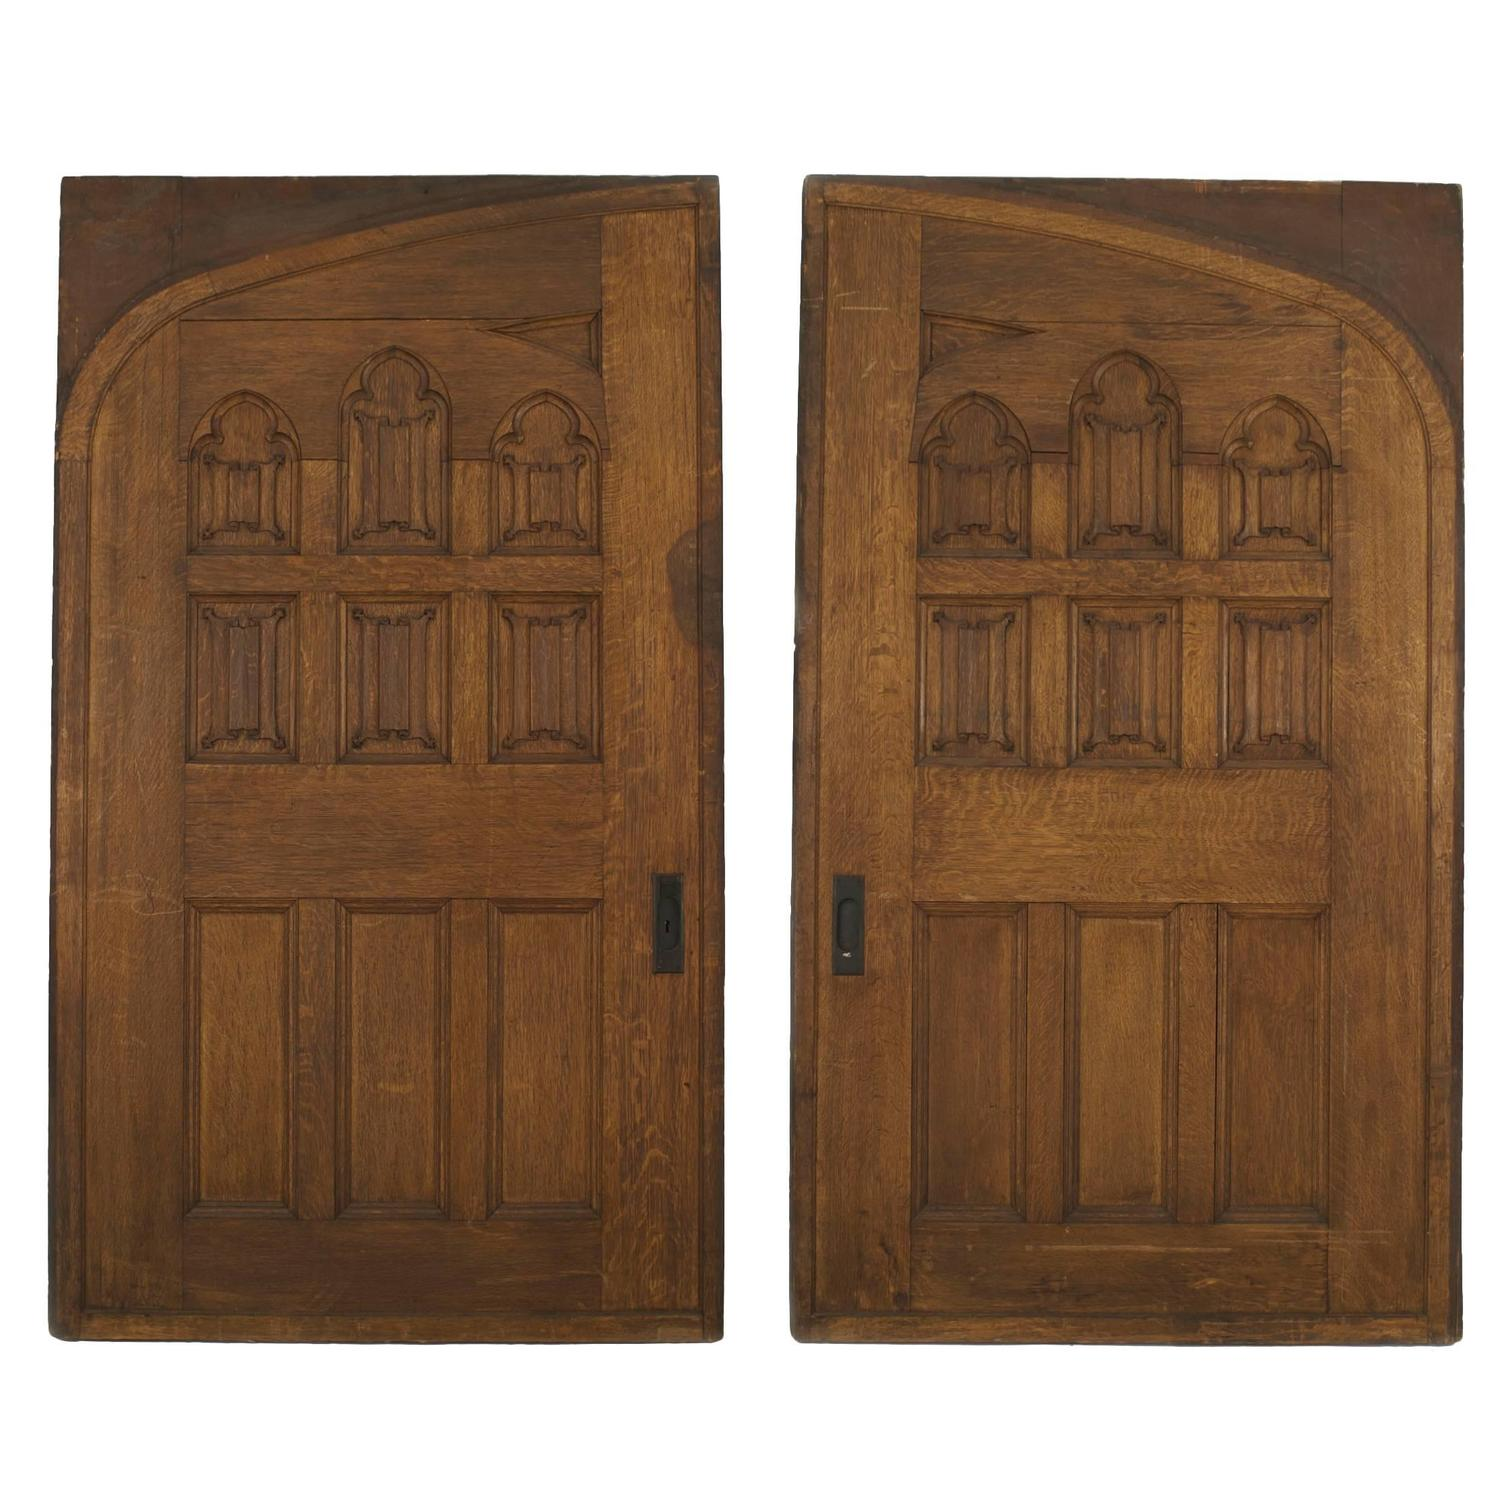 Pair Of English Gothic Revival Oak Pocket Doors For Sale